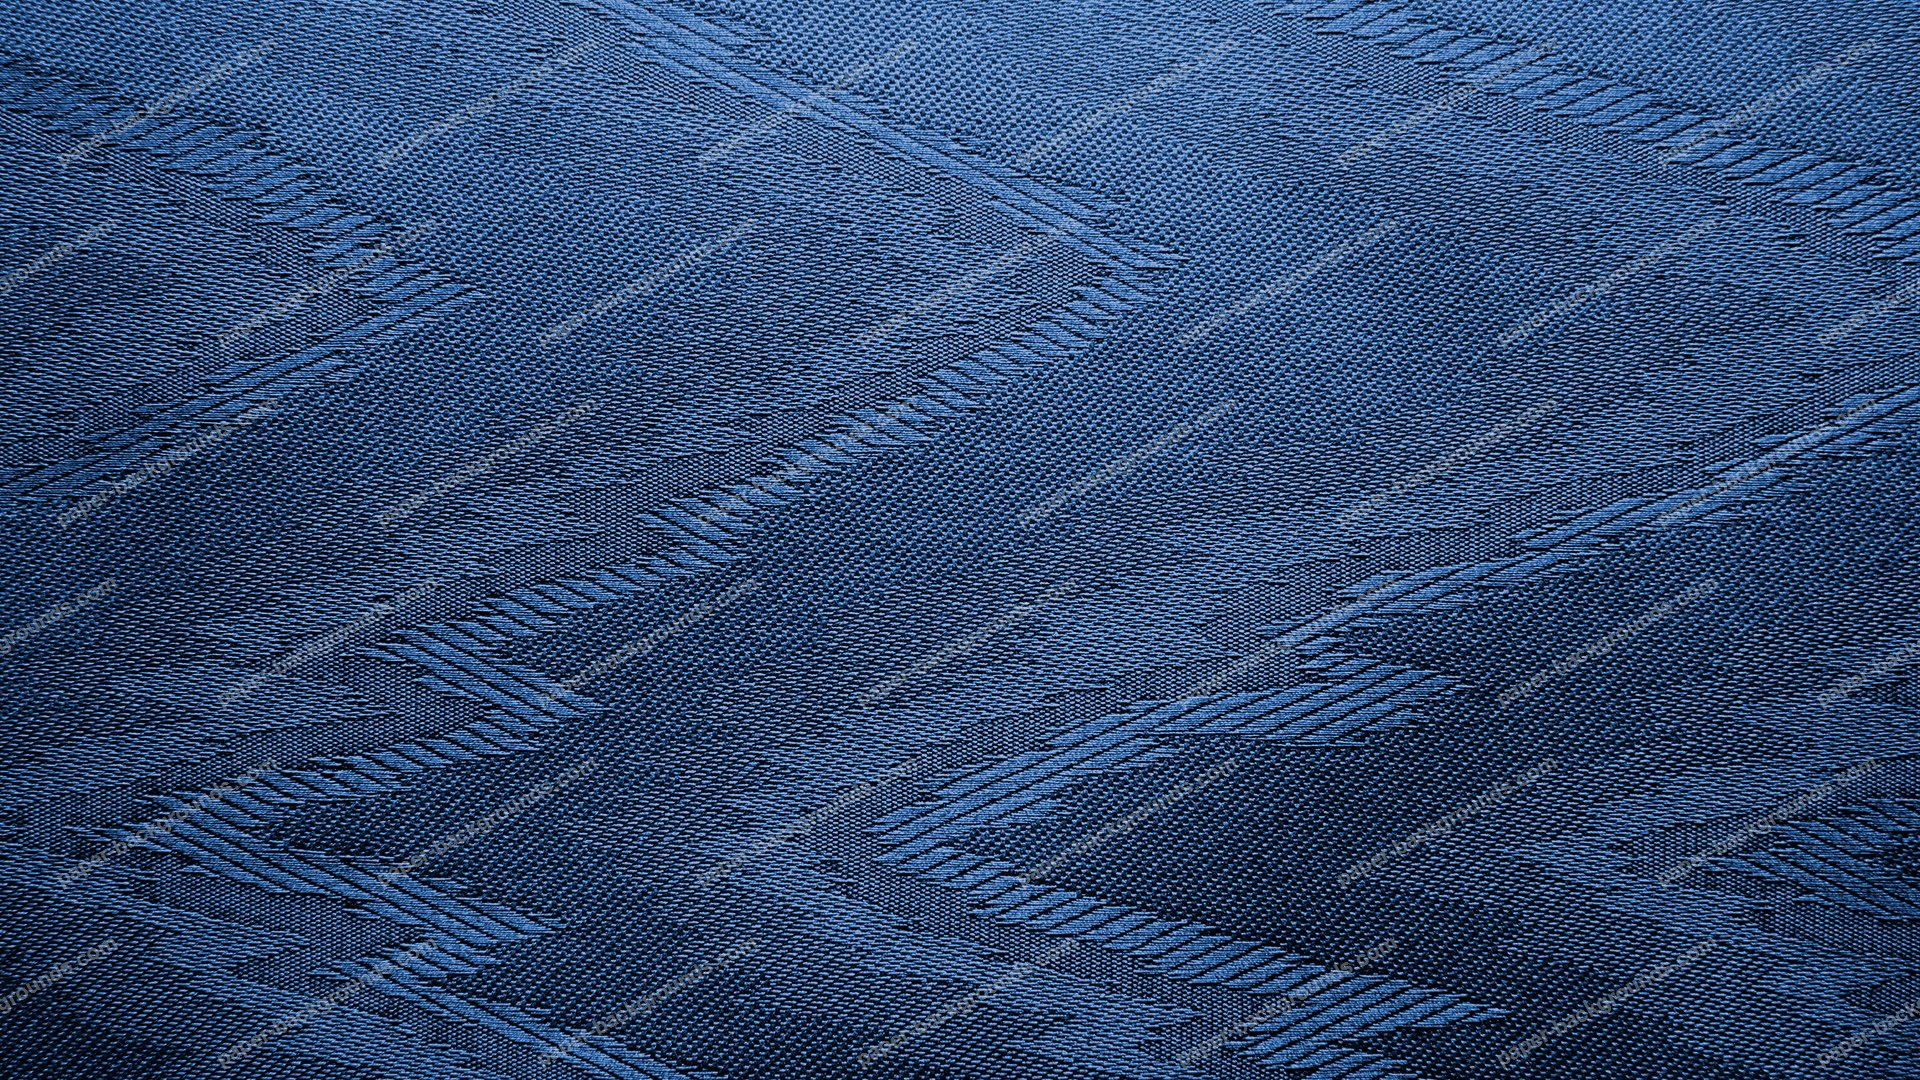 Blue Canvas With Zigzag Pattern HD 1920 x 1080p